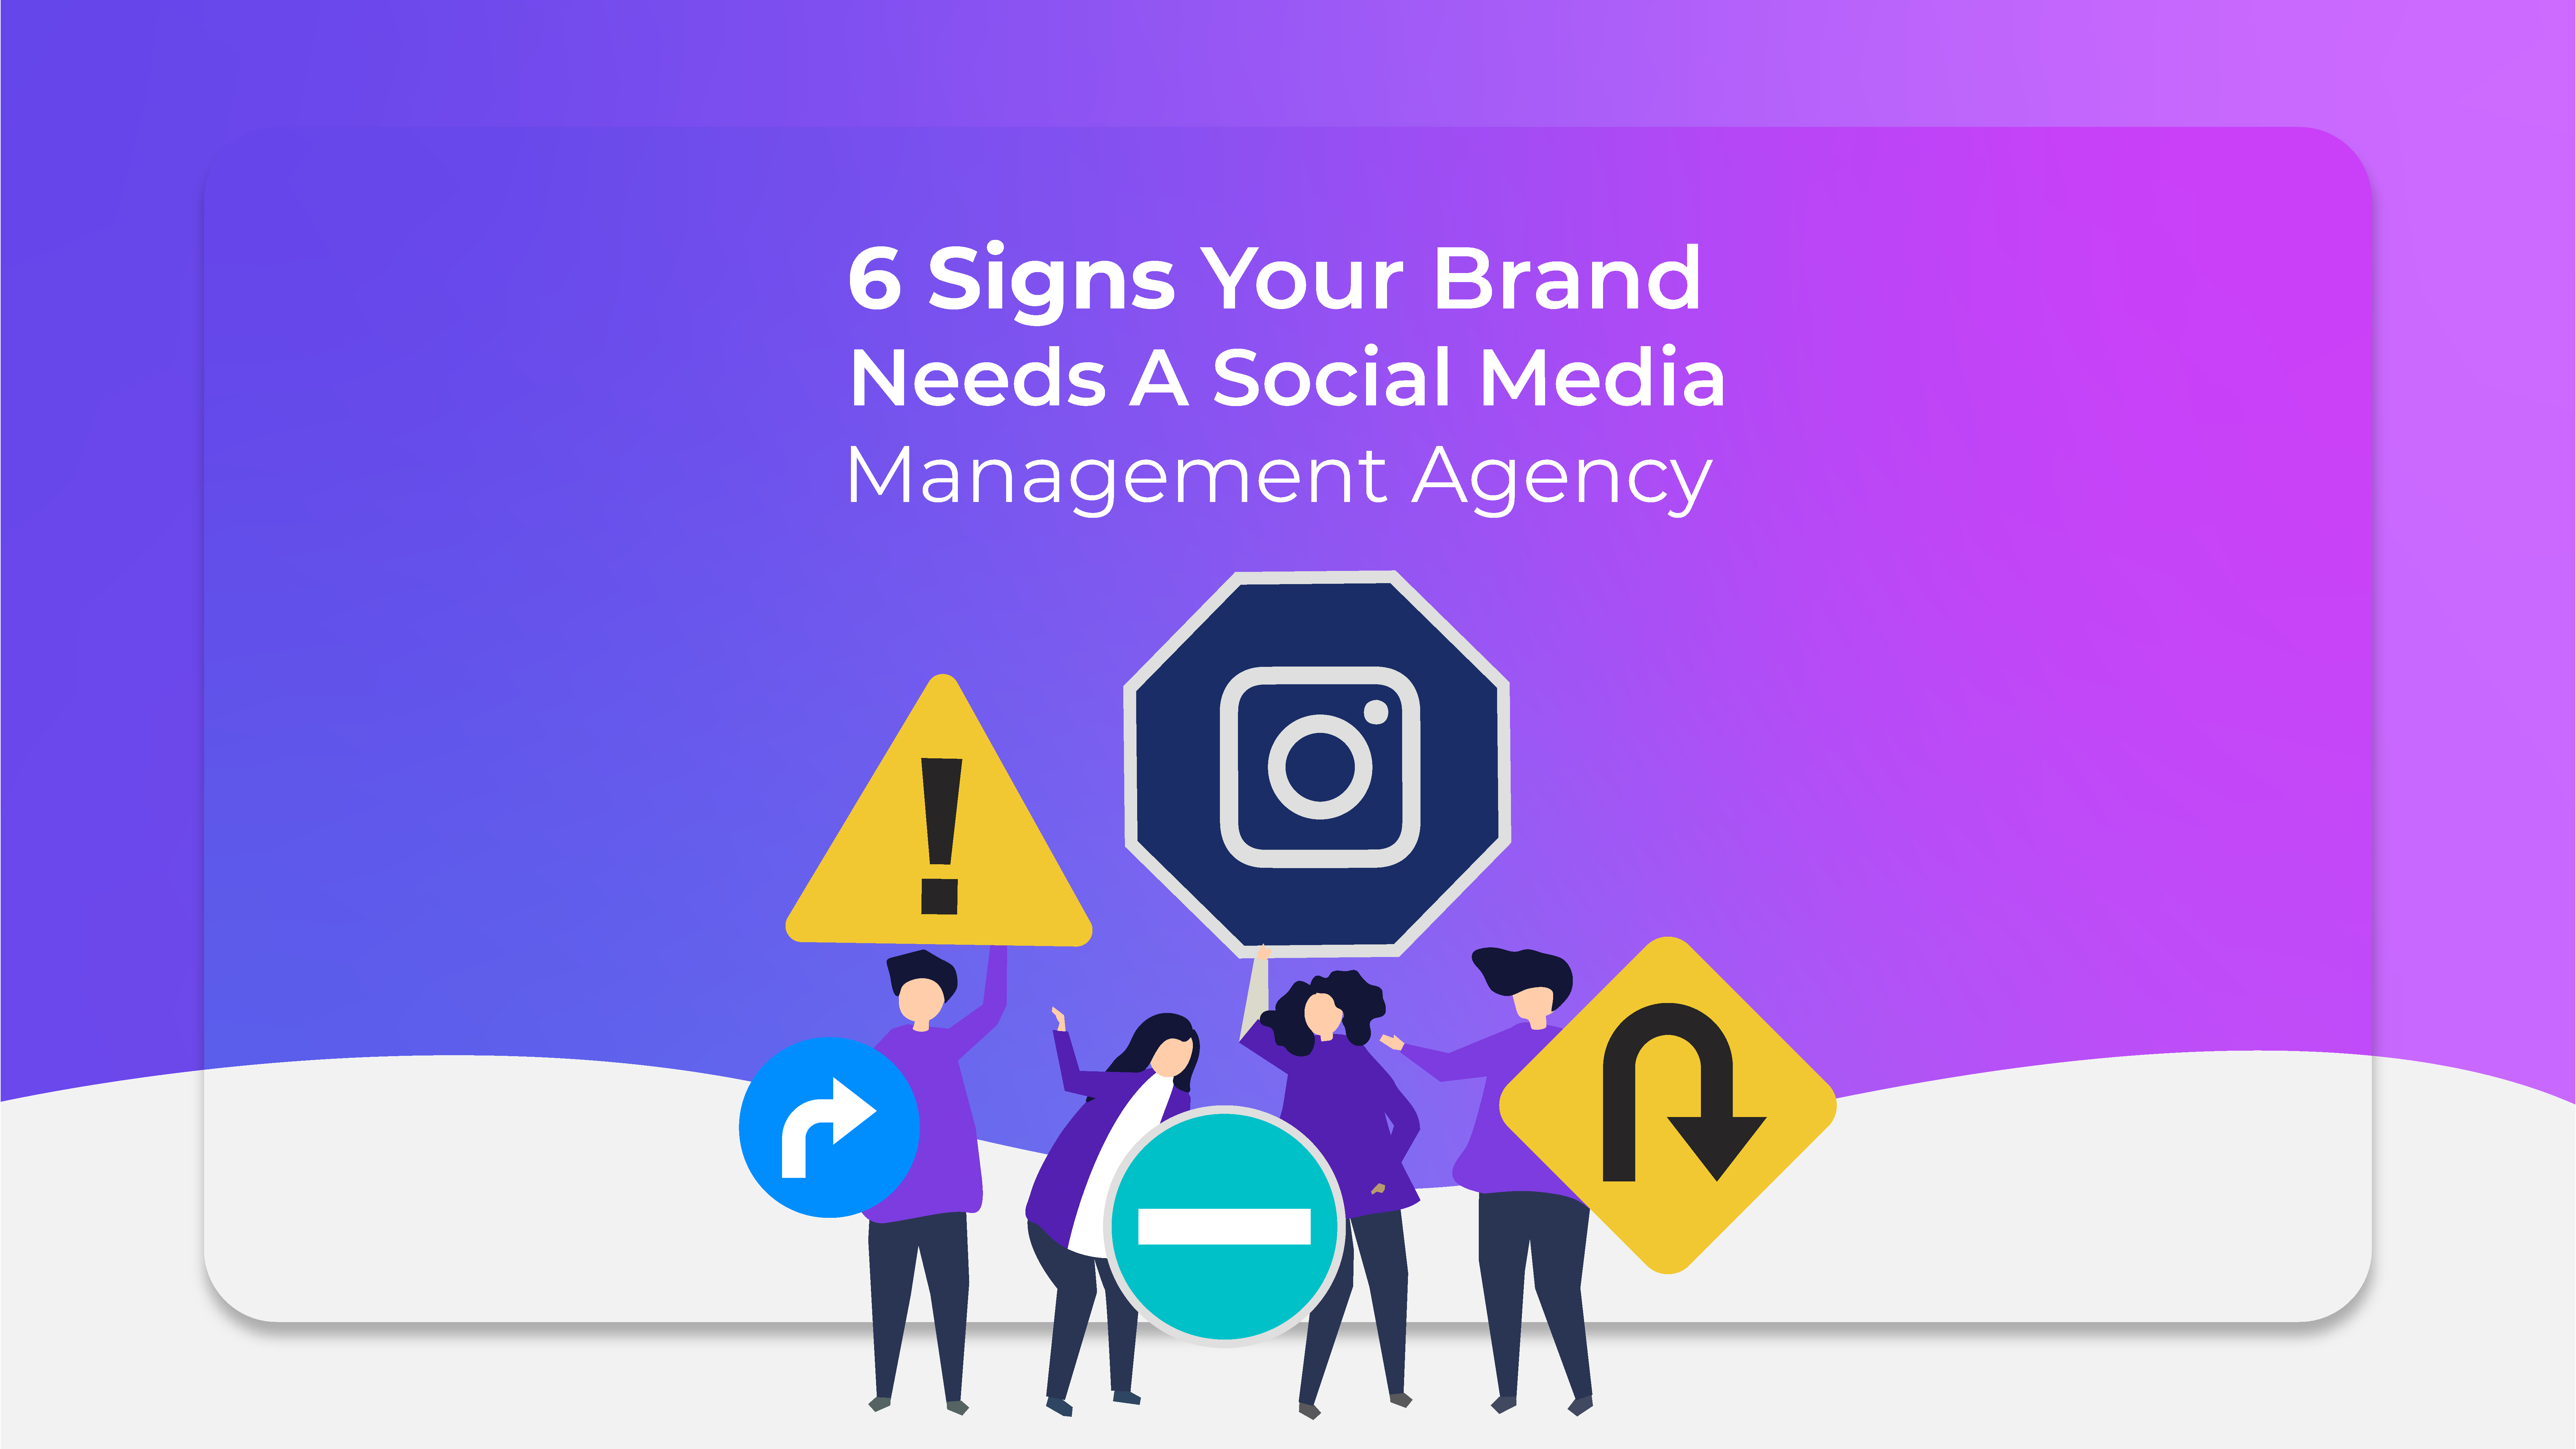 6 Signs Your Brand Needs A Social Media Management Agency